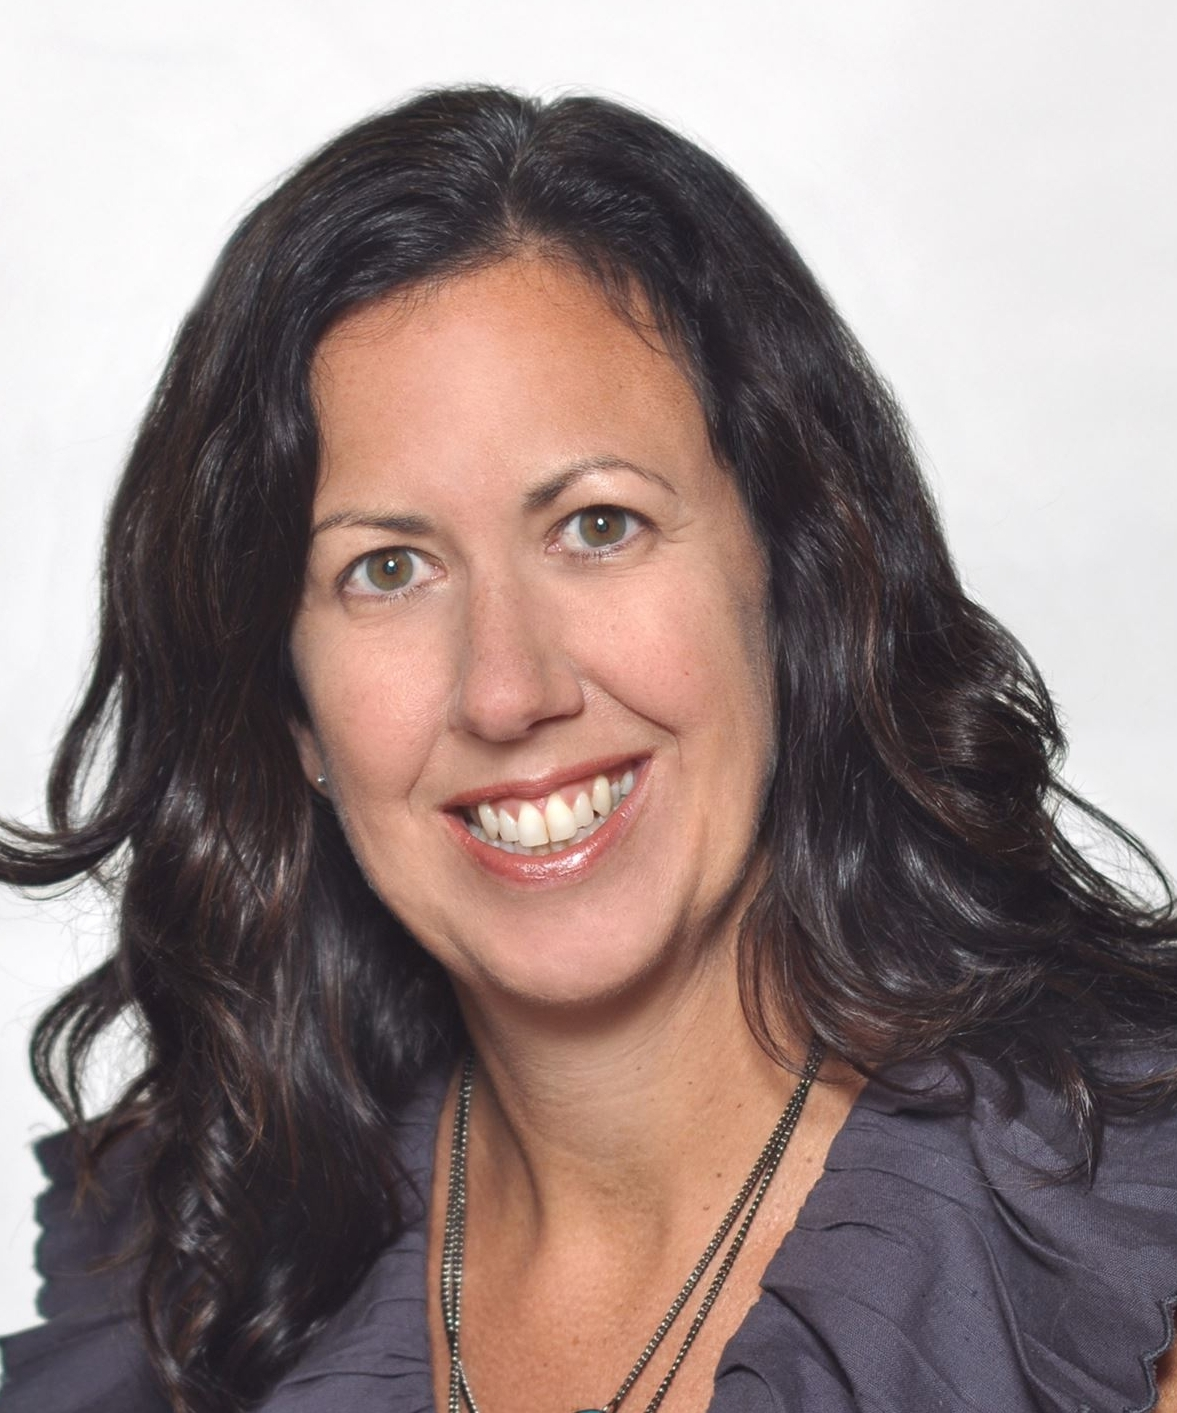 By: Bridget Castellini   Attended the Happy Hour? Get your headshot  here.